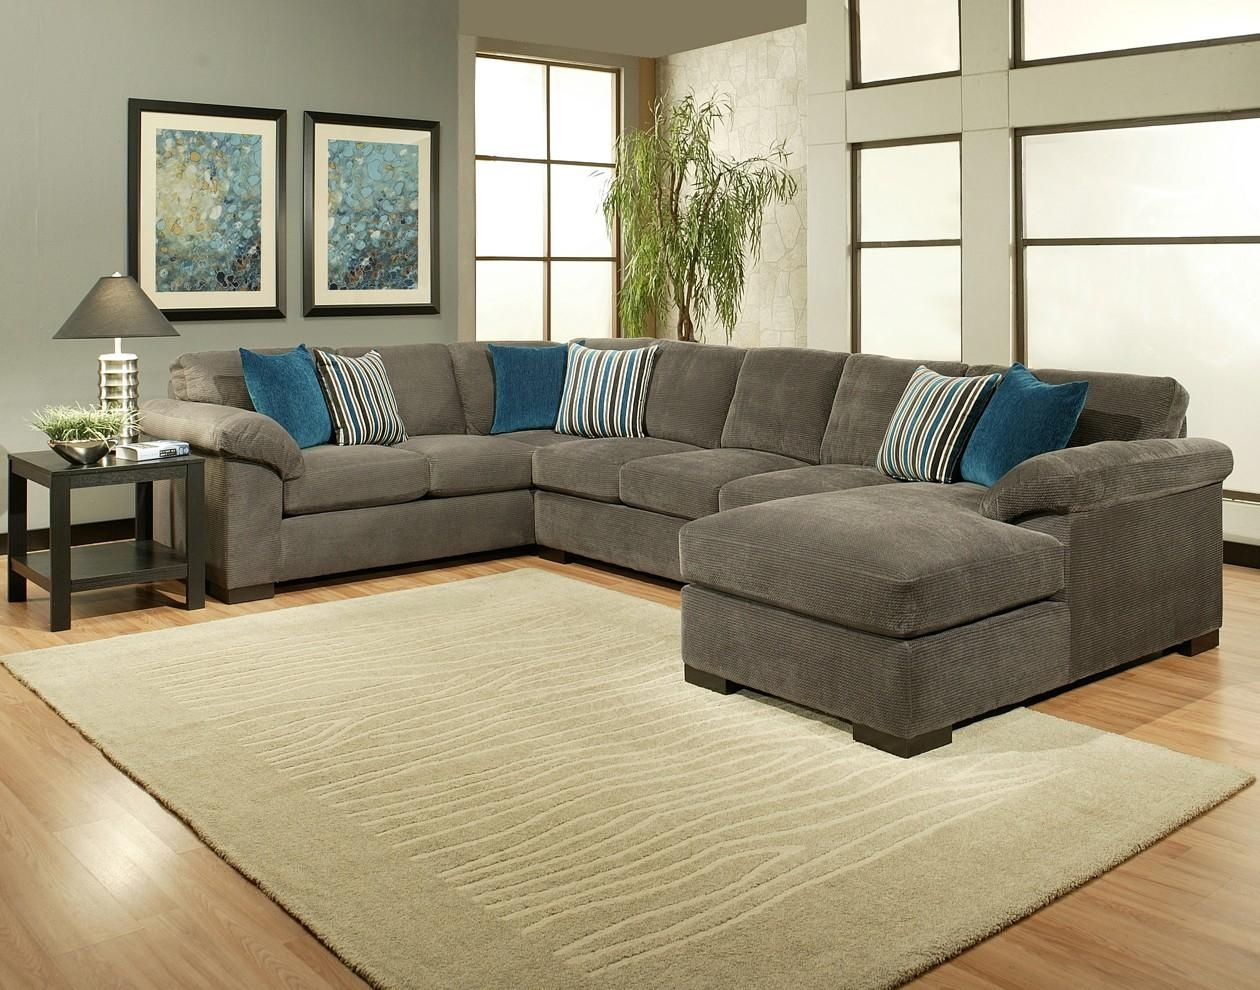 Industries 3 Pc Fire Fly Sectional Sofa in Sealy Sofas